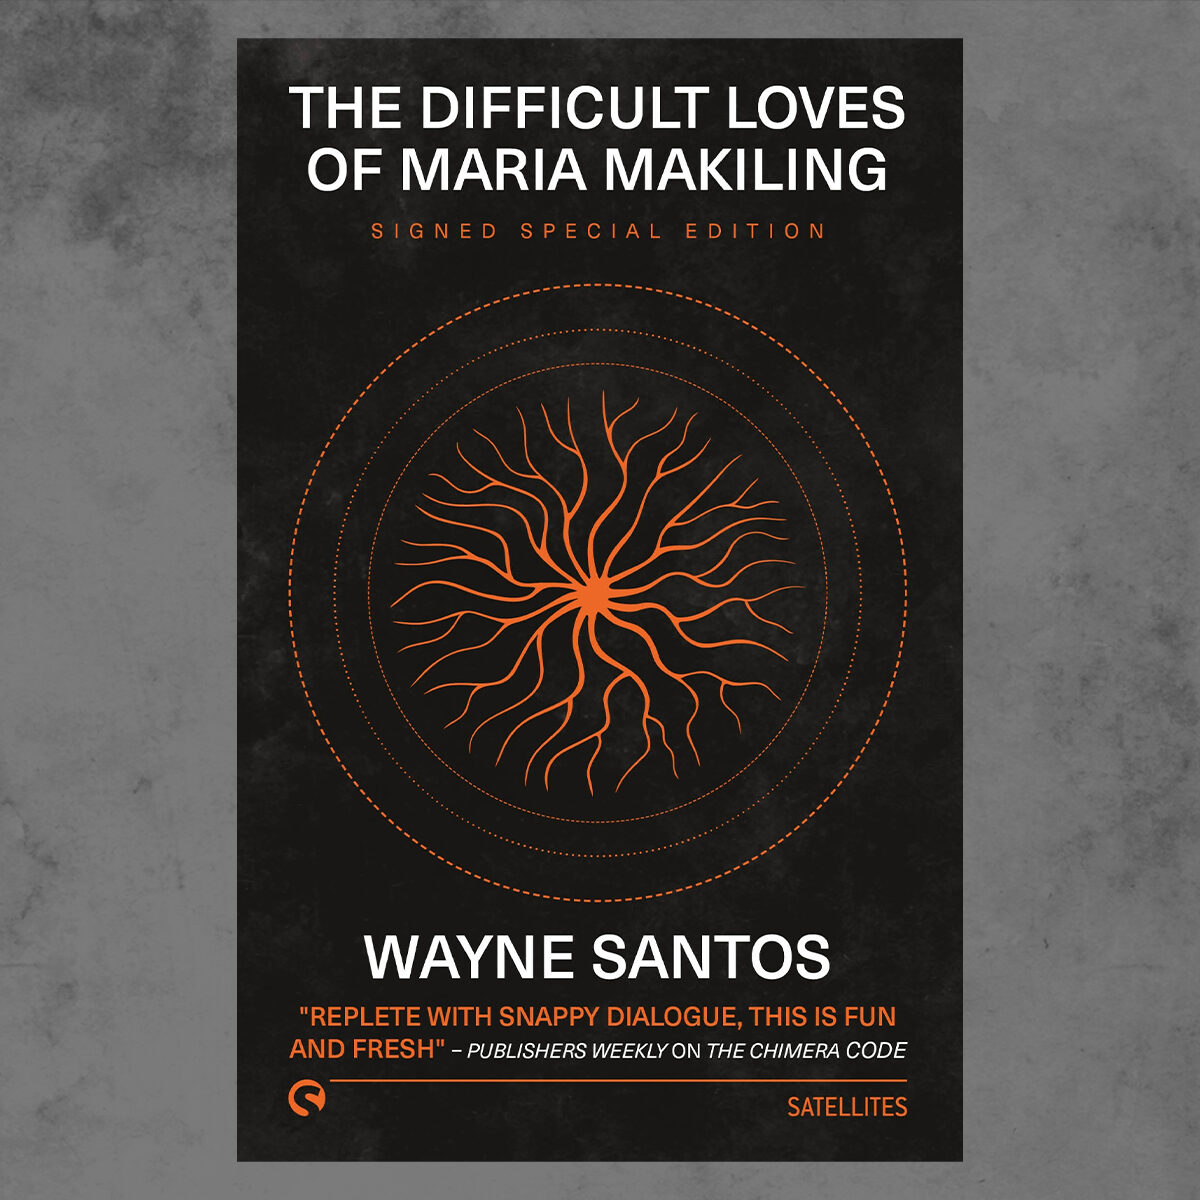 Image featuring paperback copy of The Difficult Loves of Maria Makiling by Wayne Santos on an atmospheric background.